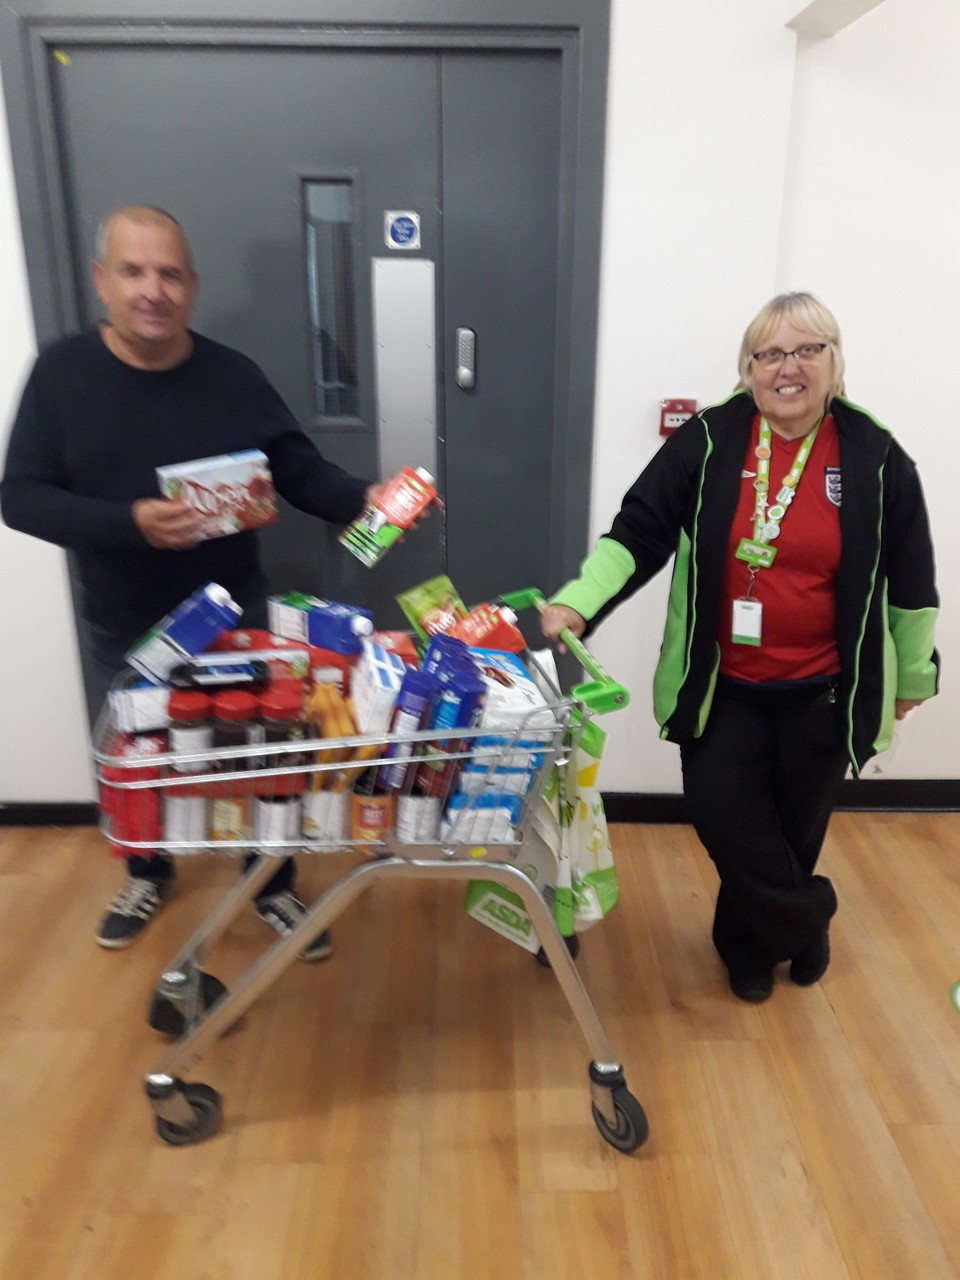 Donation to White Feather Project | Asda Thornaby